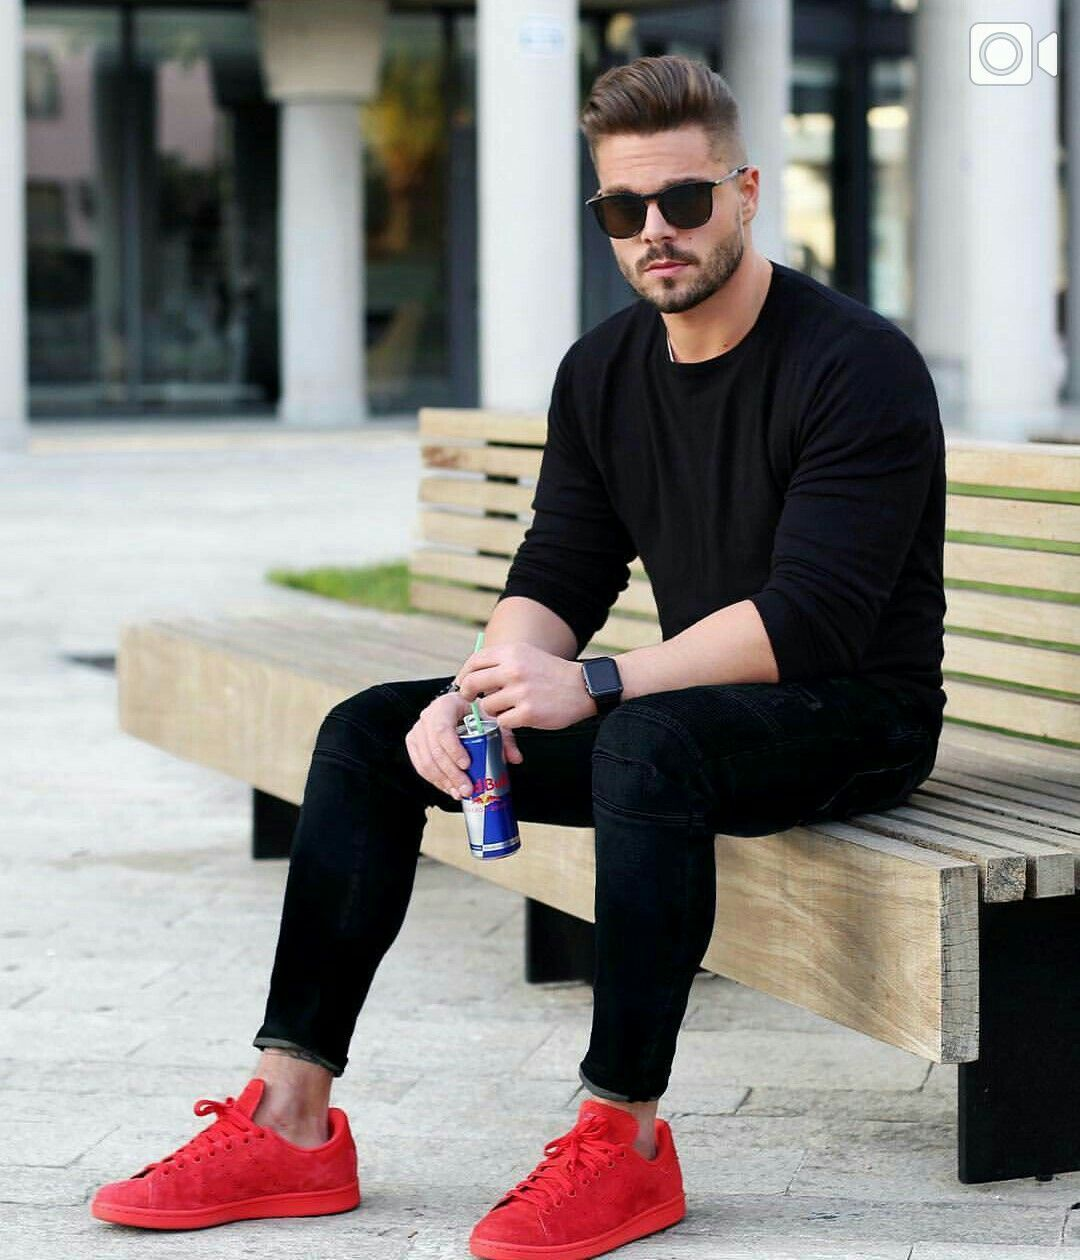 Pin by dana hkn on boys pinterest casual dressing and style men